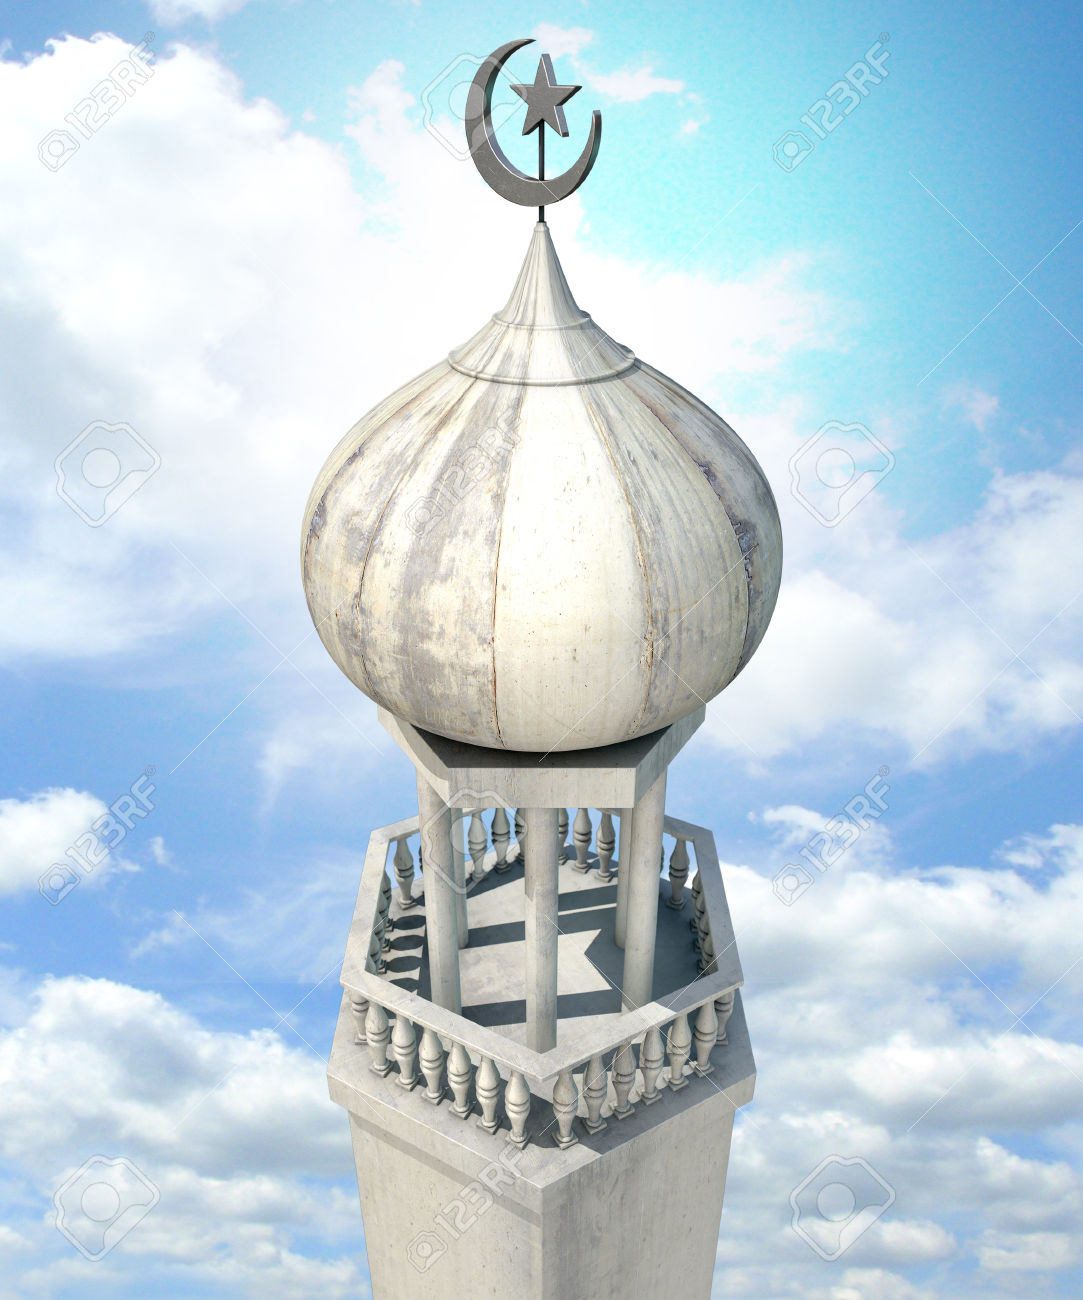 13,744 Dome Stock Illustrations, Cliparts And Royalty Free Dome.